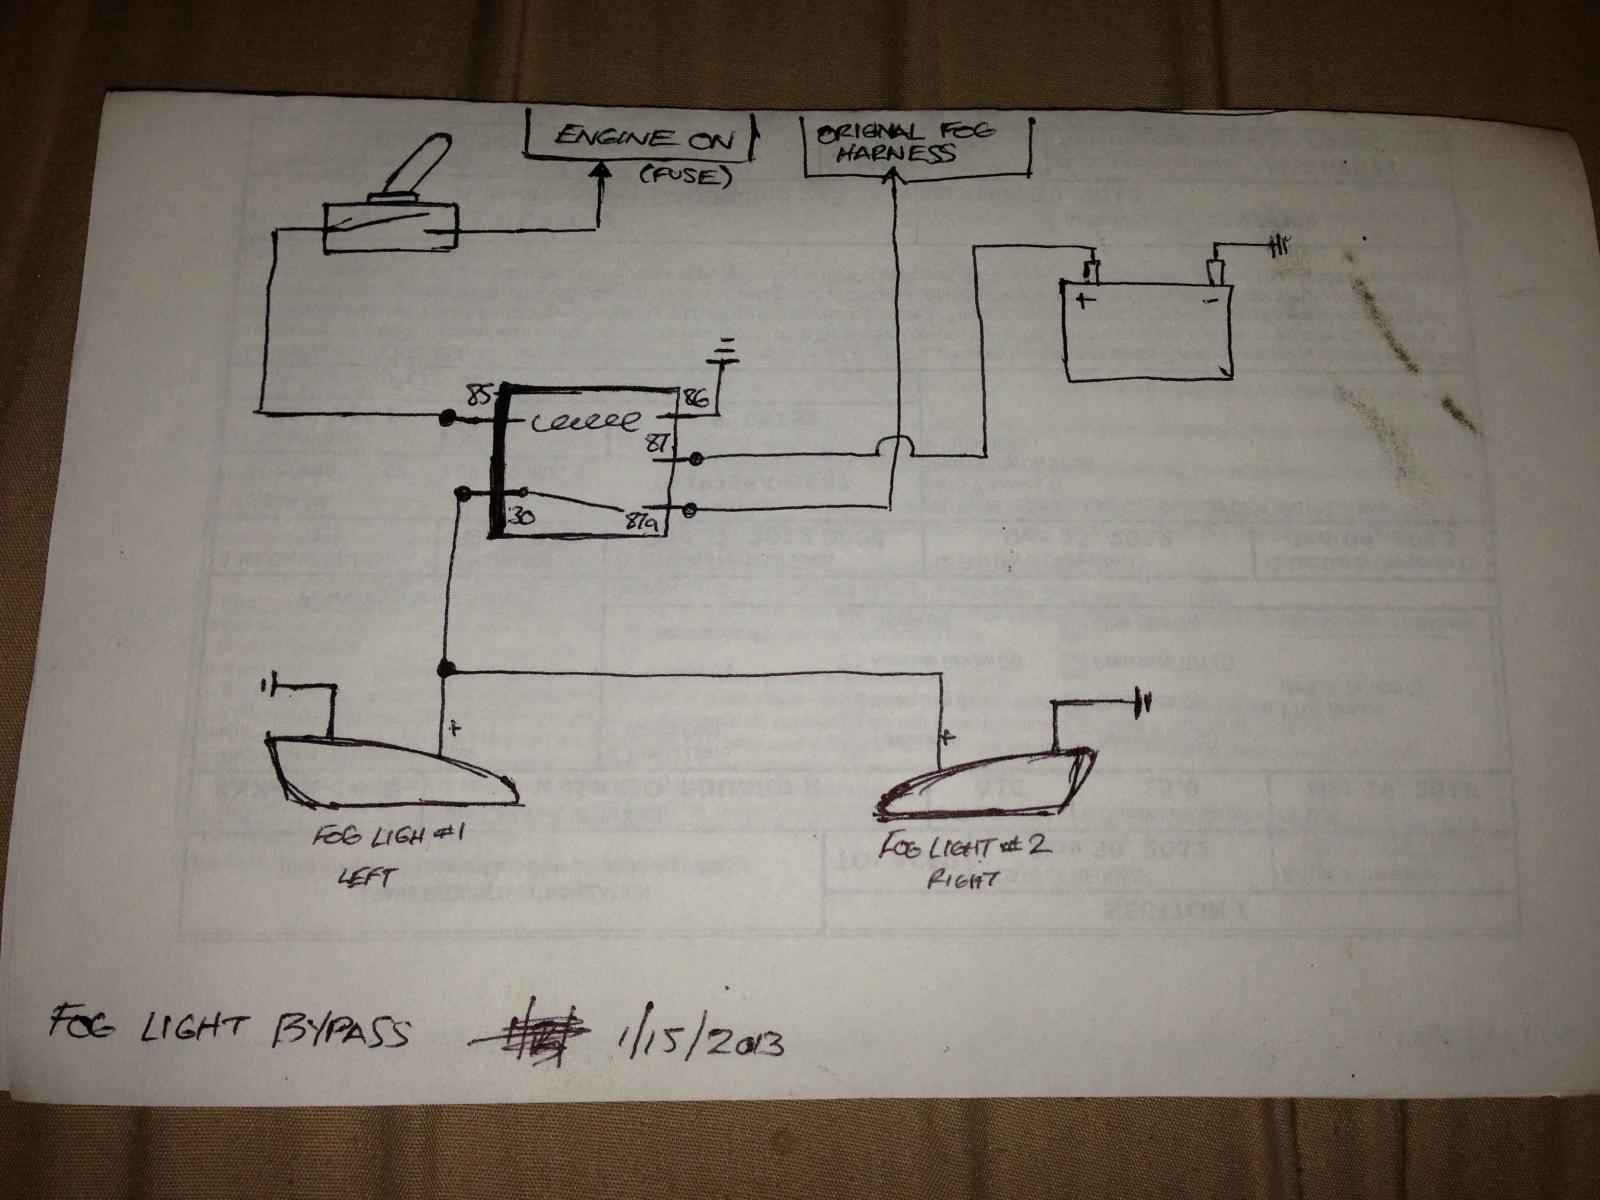 Simple Wiring Diagram to Byp Foglights (Works w/o ... on 2006 hhr parts diagram, spark plugs diagram, mazda 3 parts diagram, ford expedition diagram, fuse box diagram, chevy hhr diagram, switch diagram, steering box diagram, power steering pump diagram, solex carburetor diagram, a/c compressor diagram, f150 trailer plug diagram, chevy 4x4 actuator diagram, telephone network diagram, fog machine, 2002 ford f350 fuse panel diagram, egr valve diagram, cigarette lighter diagram, magneto ignition system diagram, headlight adjustment diagram,